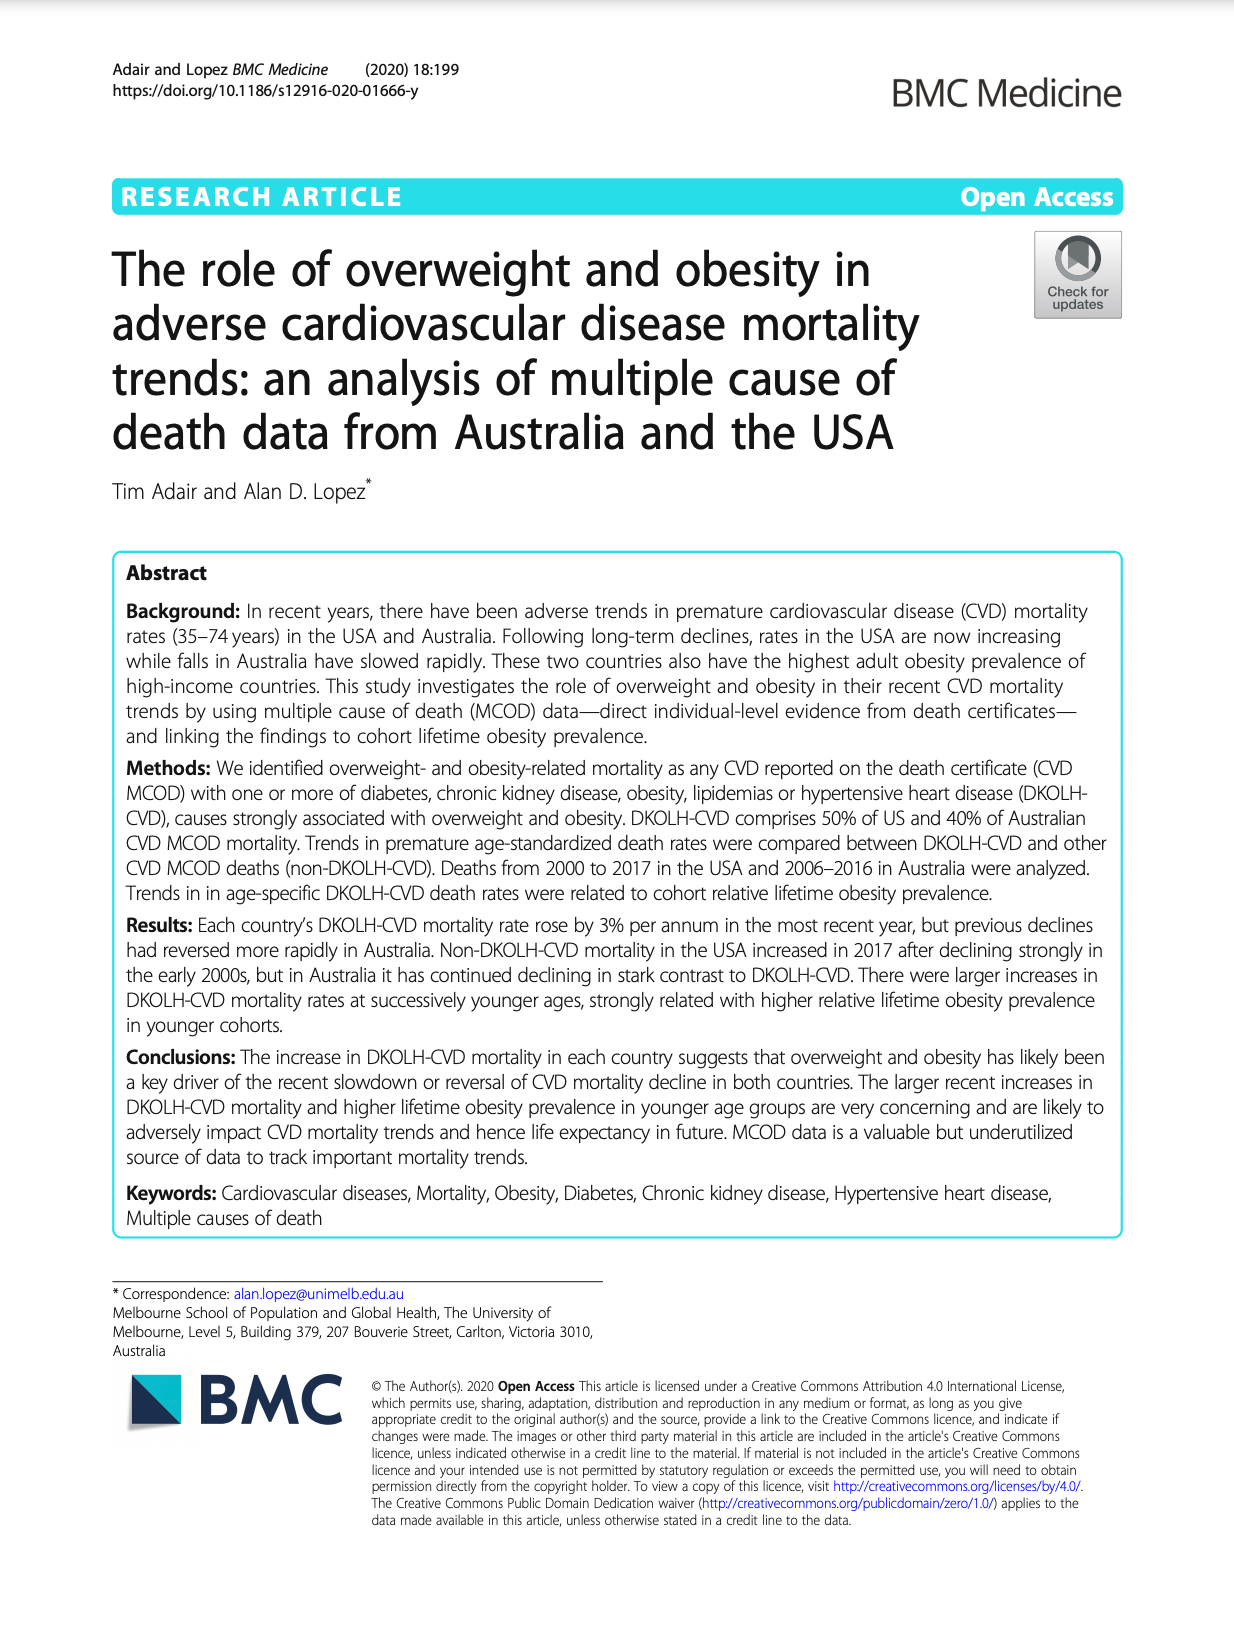 The role of overweight and obesity in adverse cardiovascular disease mortality trends: an analysis of multiple cause of death data from Australia and the USA thumbnail